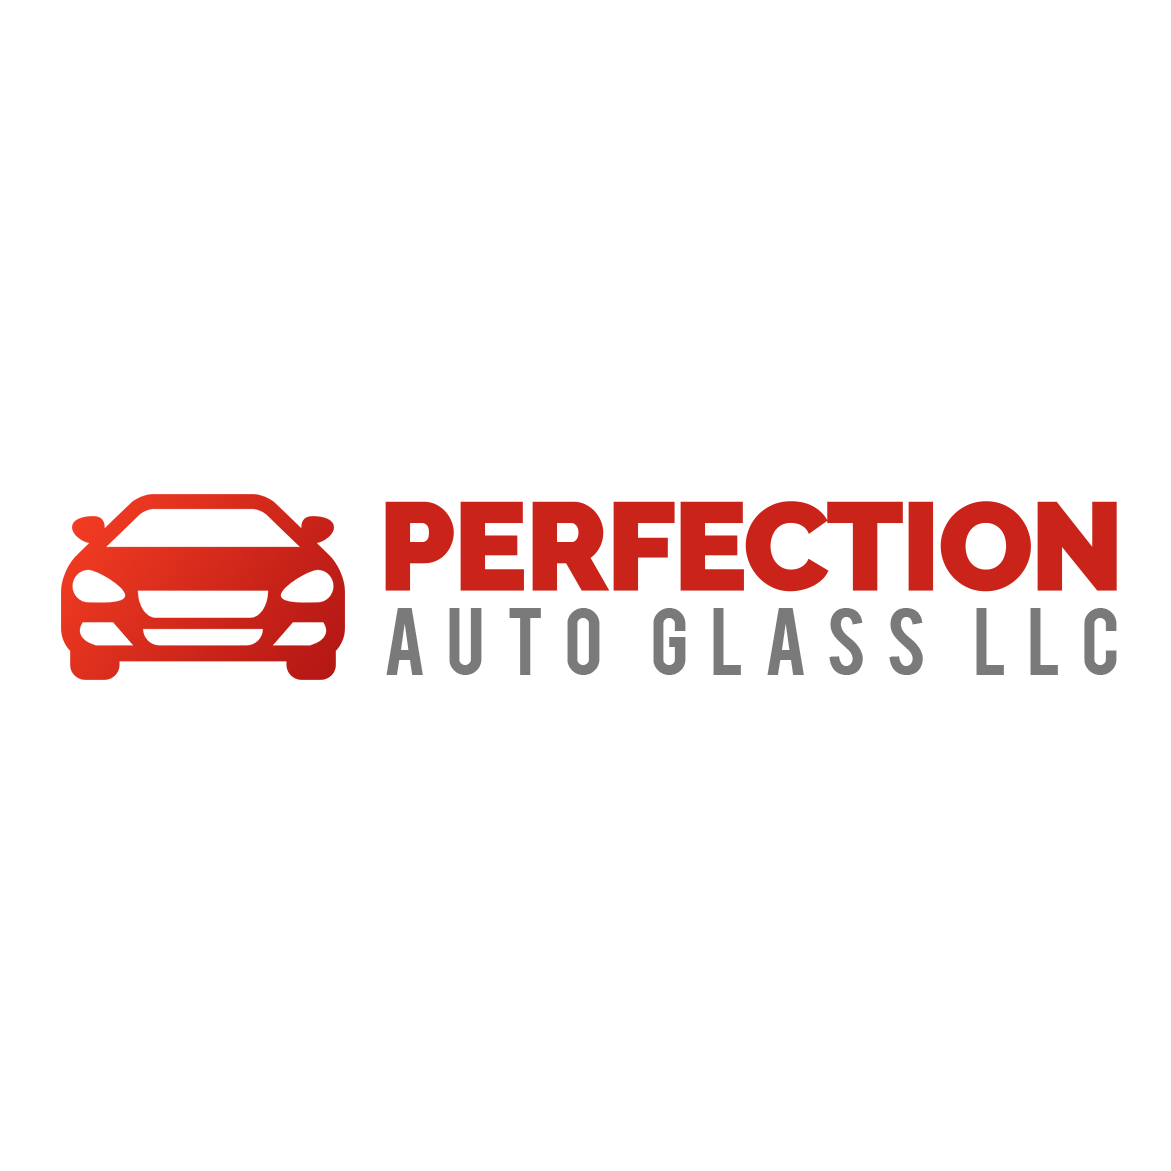 Perfection Auto Glass, LLC